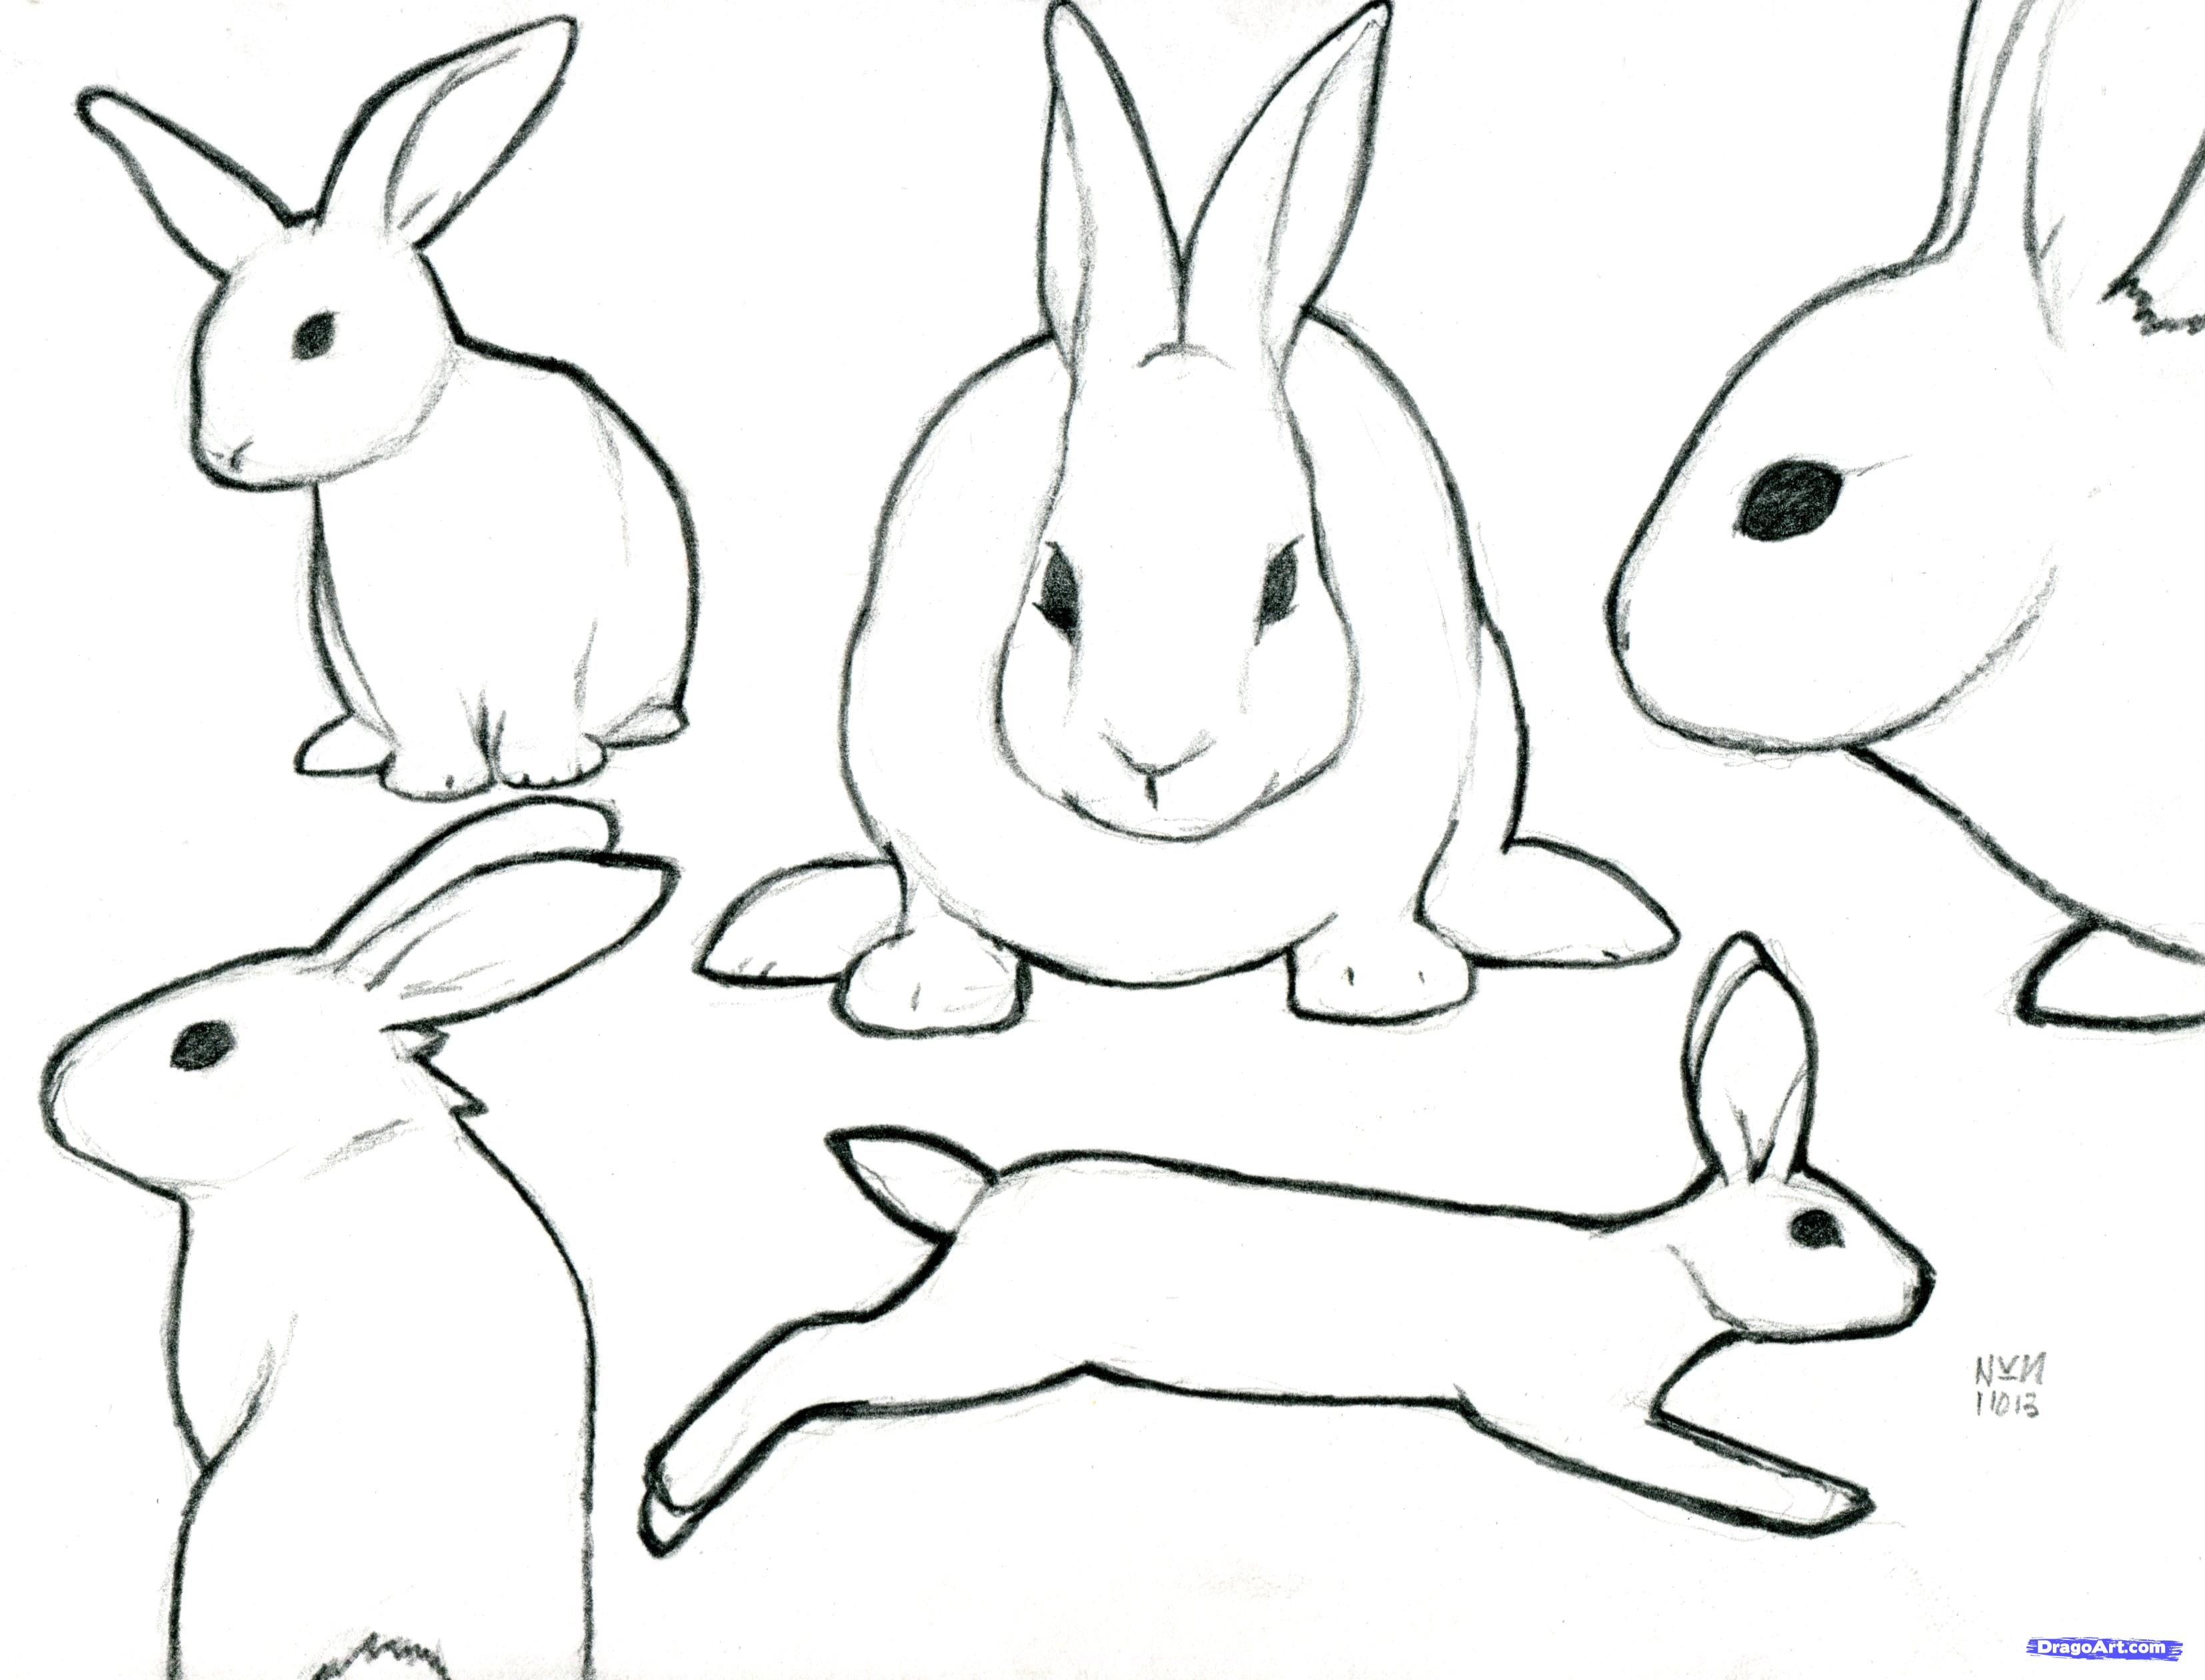 Free Rabbit Cartoon Outline Download Free Clip Art Free Clip Art On Clipart Library